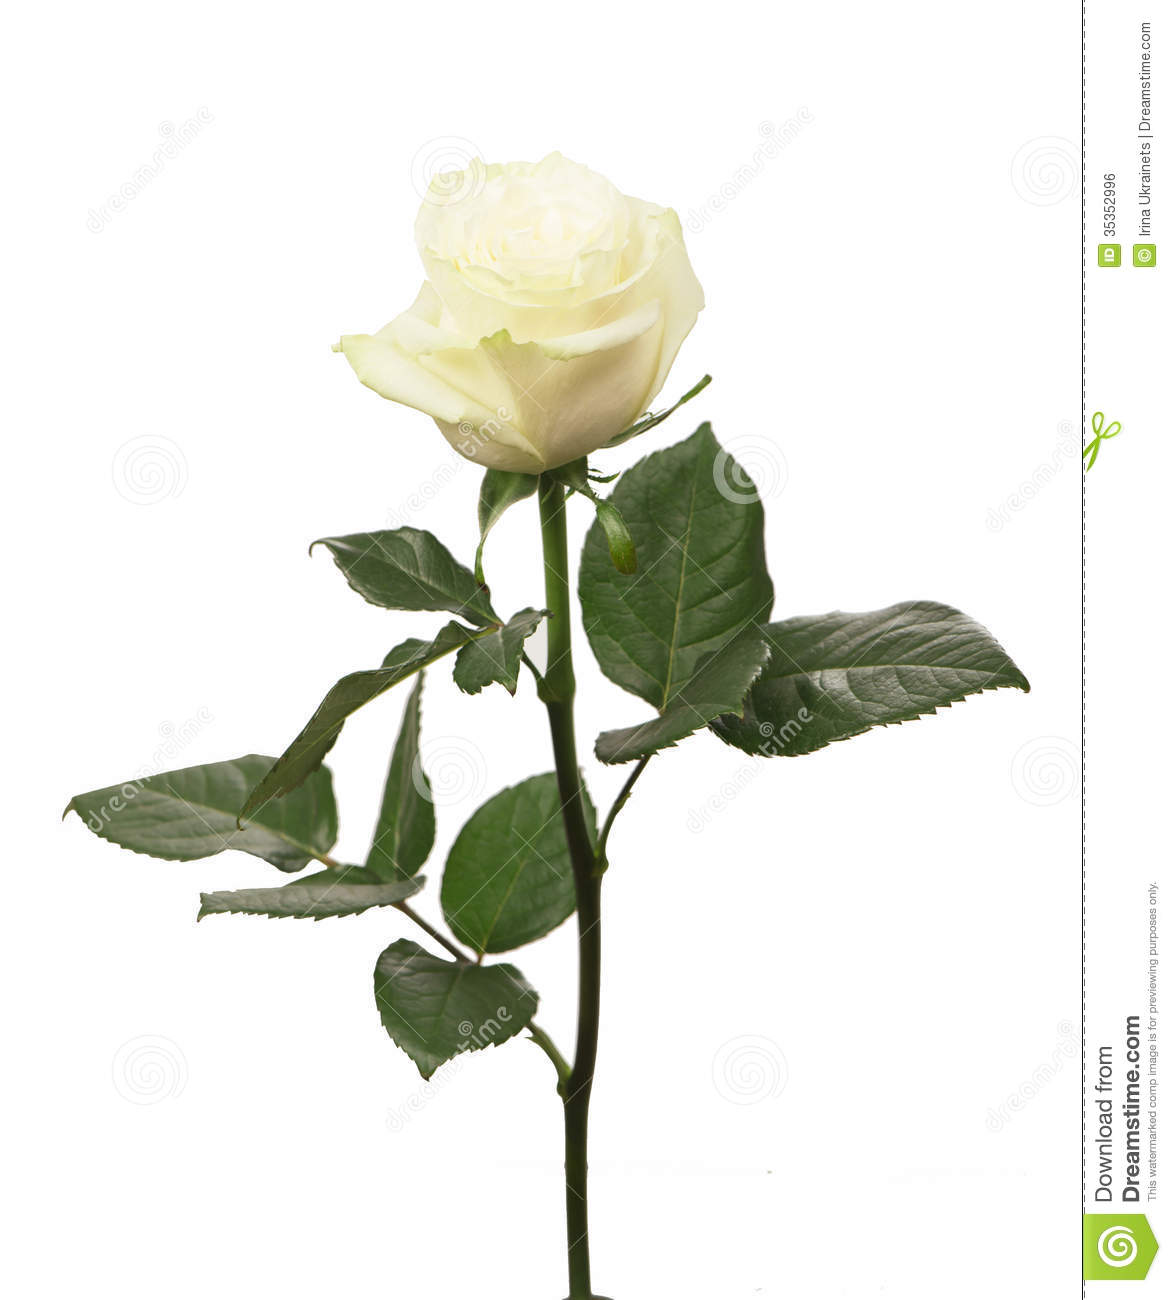 Single White Rose Royalty Free Stock Image - Image: 35352996